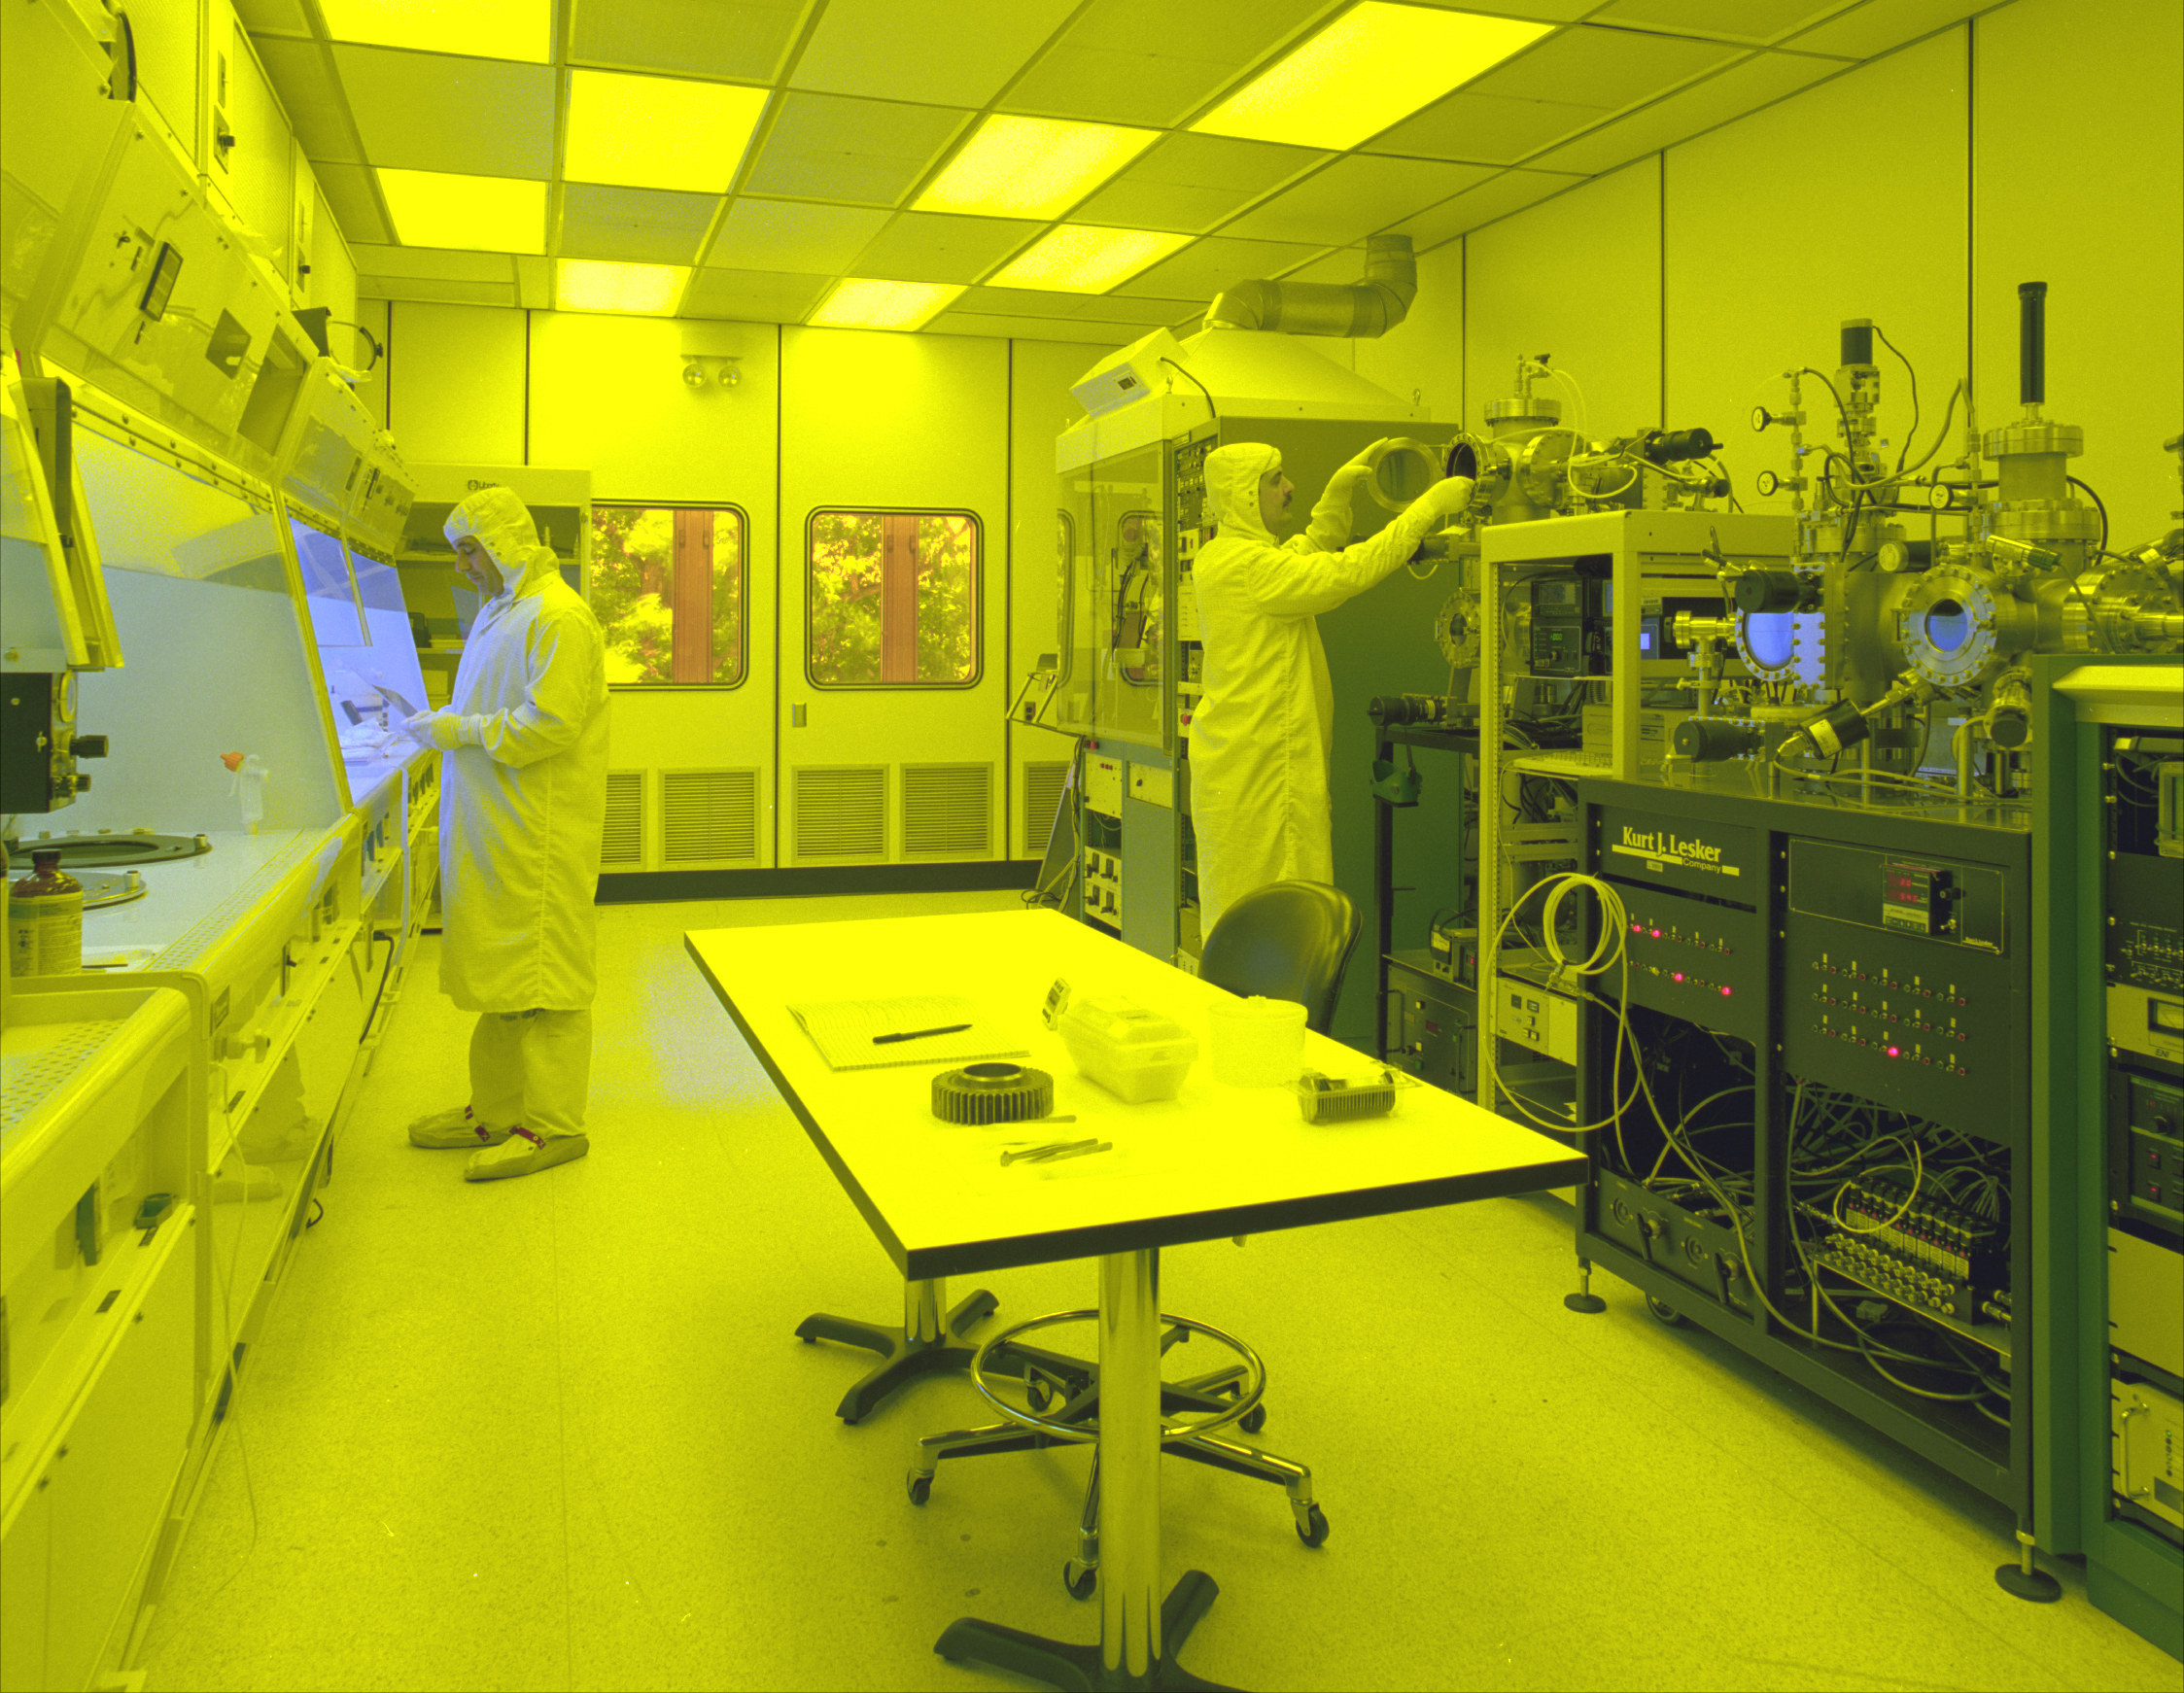 http://upload.wikimedia.org/wikipedia/commons/5/50/Clean_room.jpg